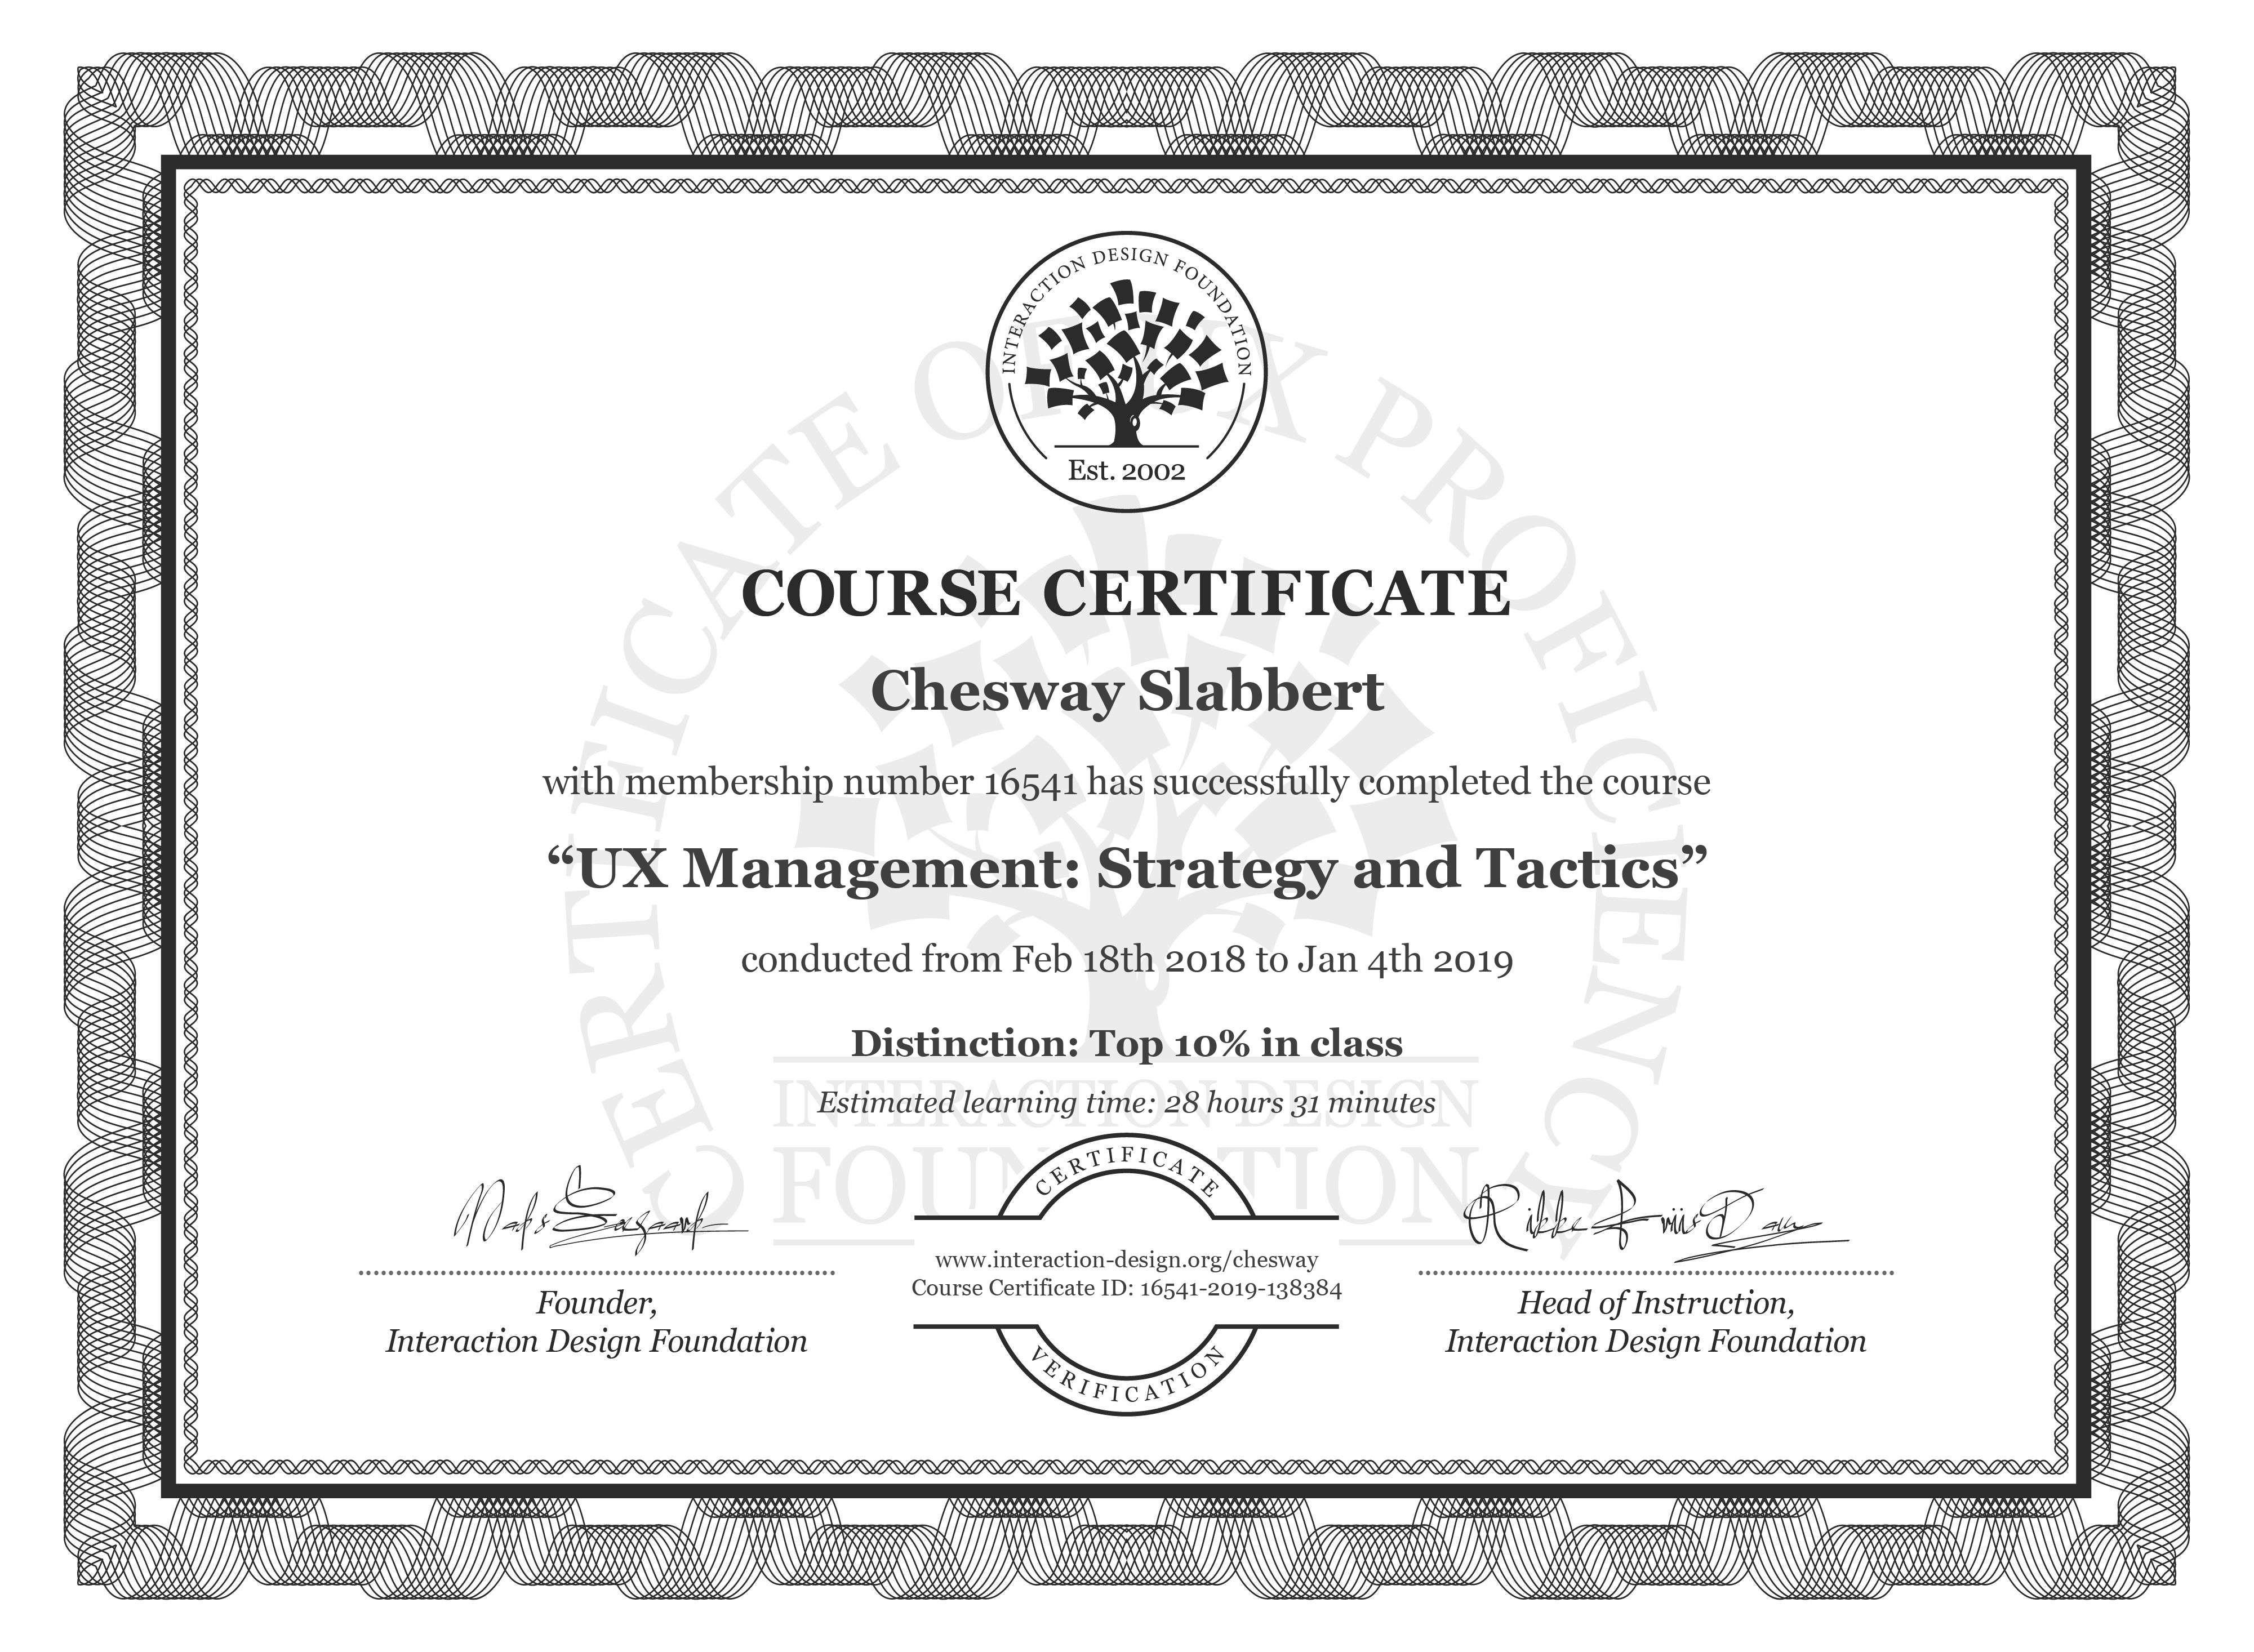 Chesway Slabbert: Course Certificate - UX Management: Strategy and Tactics